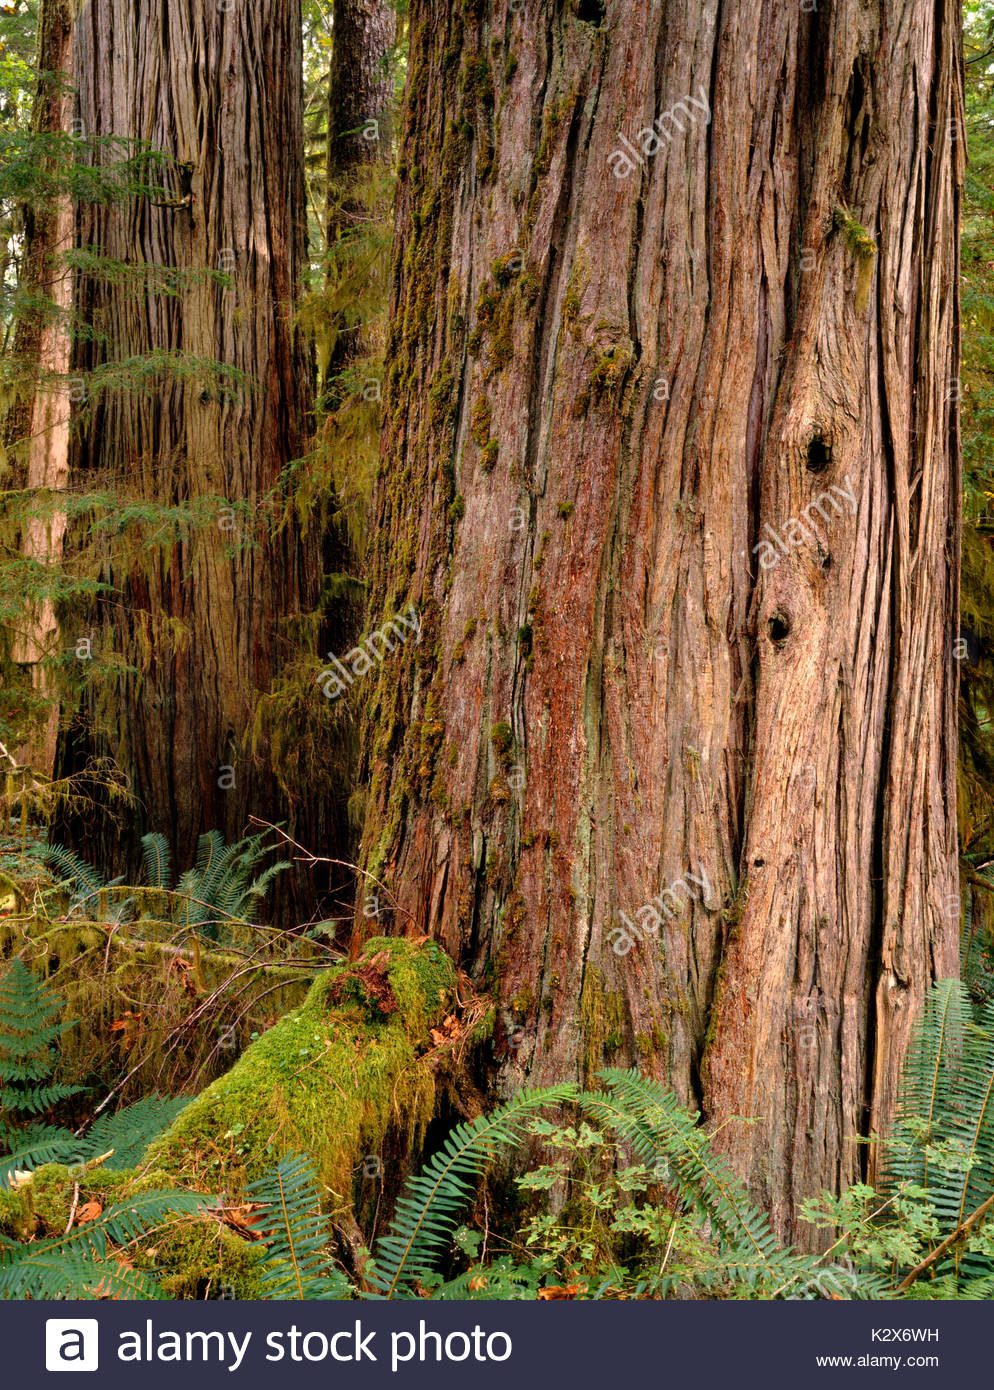 Western Red Cedar Tree in Old Growth Forest, Mount Baker-Snoqualmie National Forest, Washington State Stock Photo